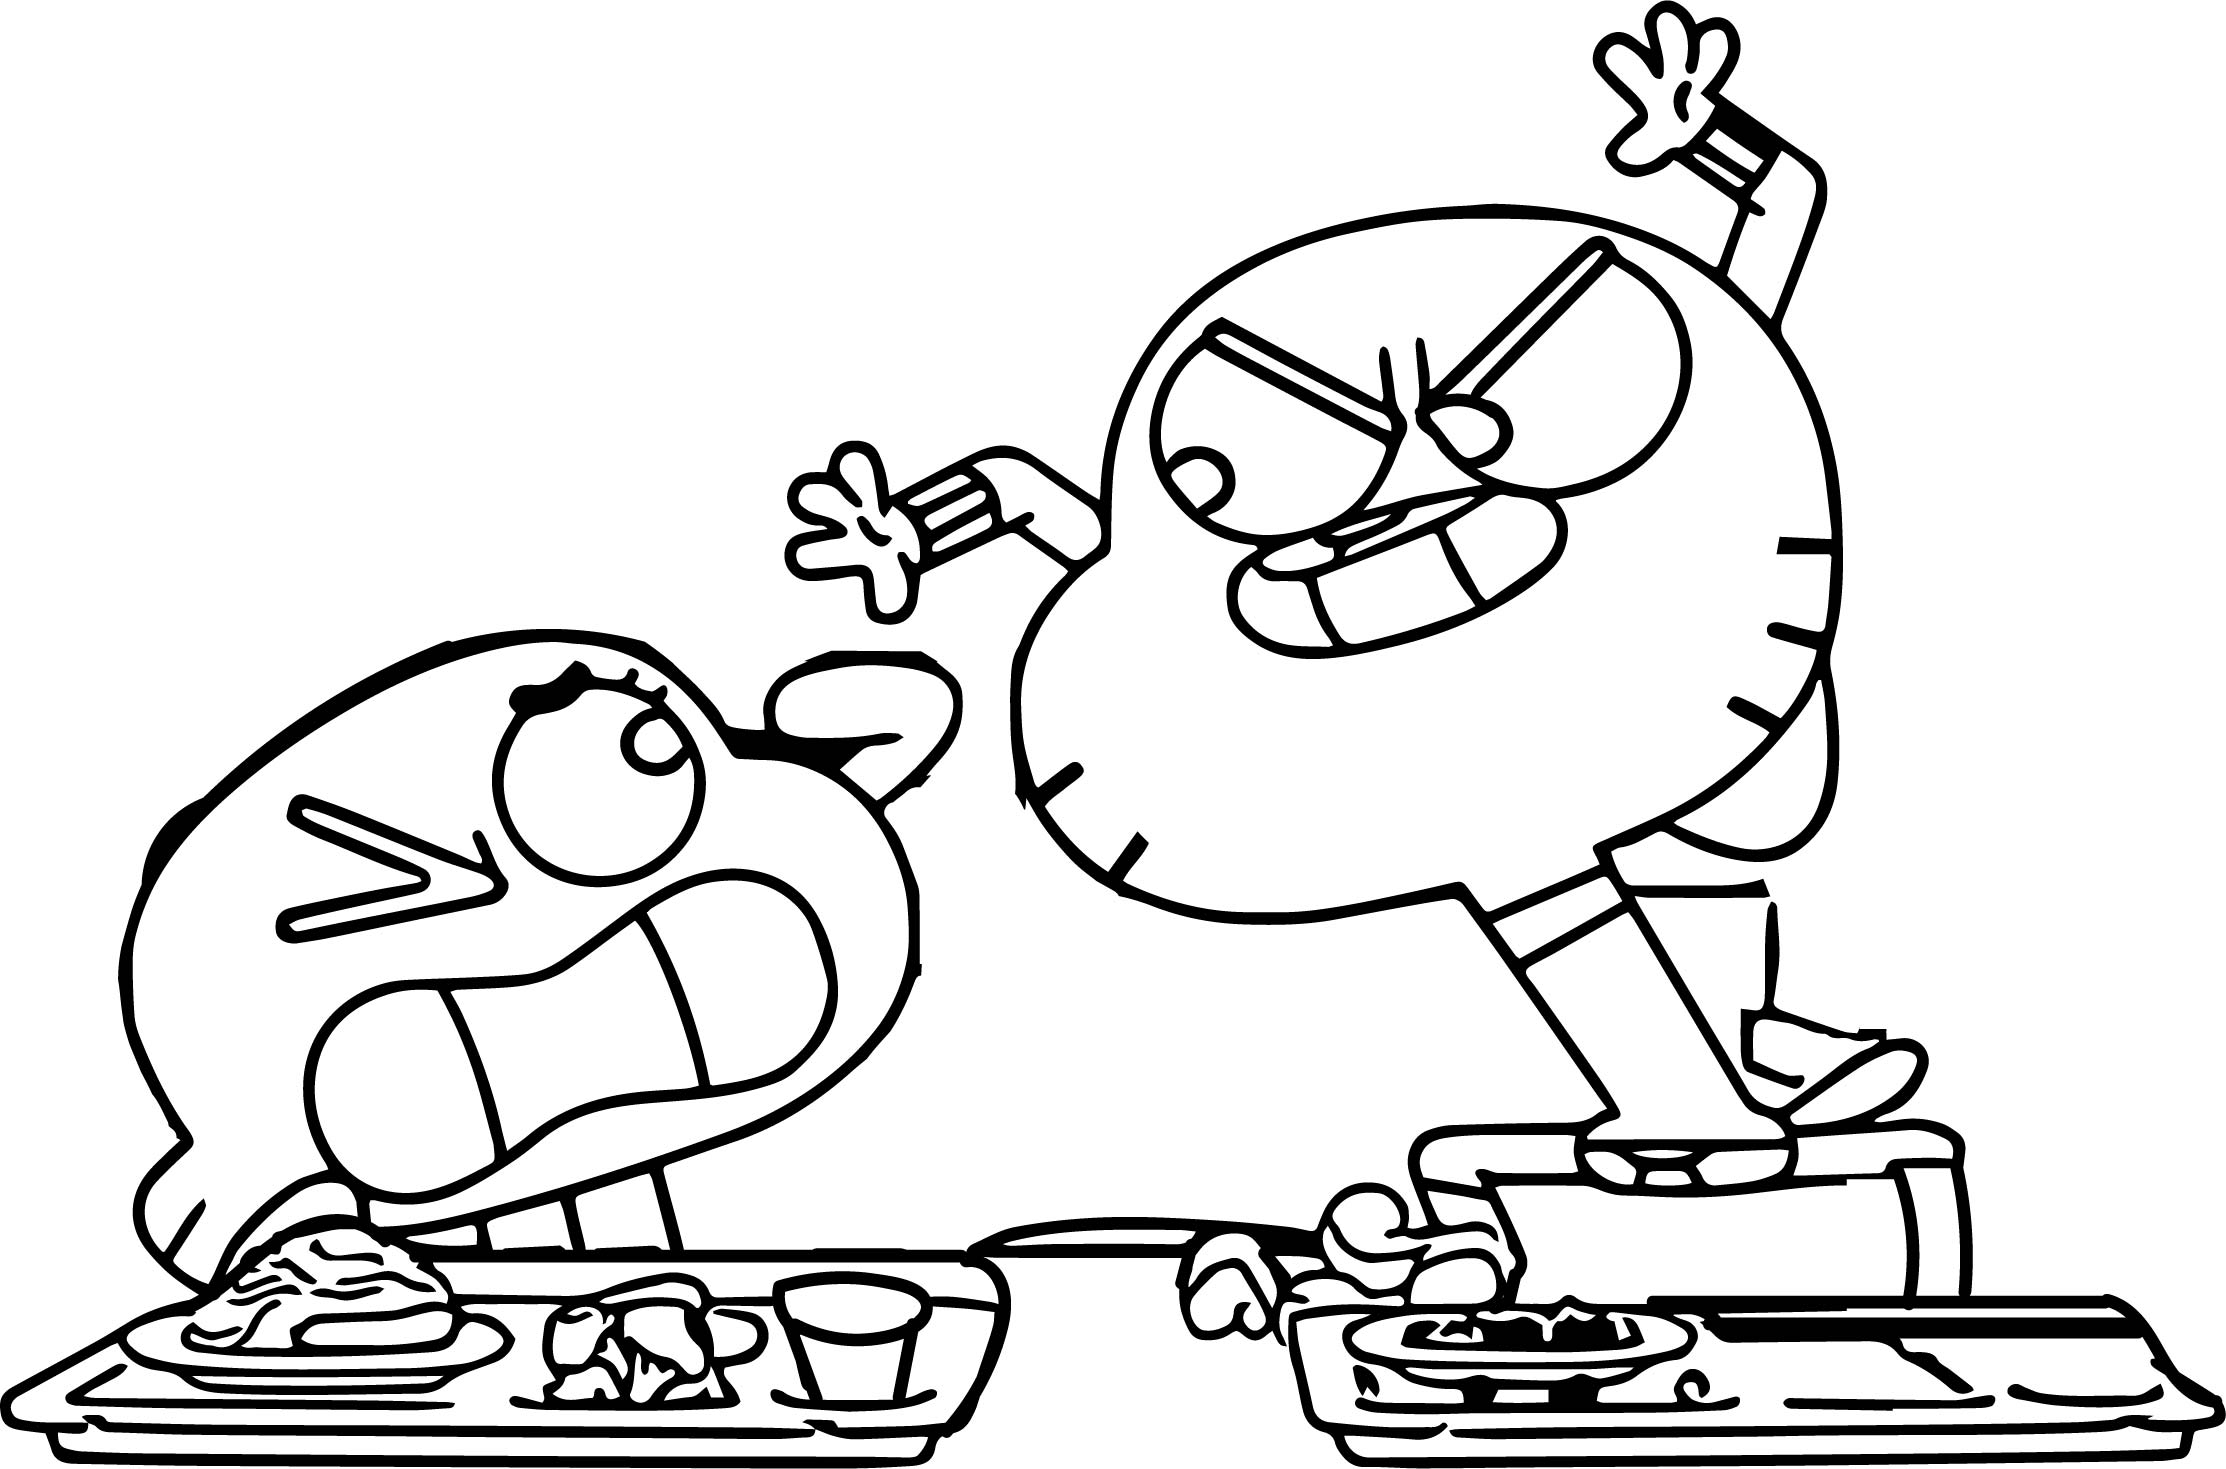 gumball darwin coloring pages - photo#11